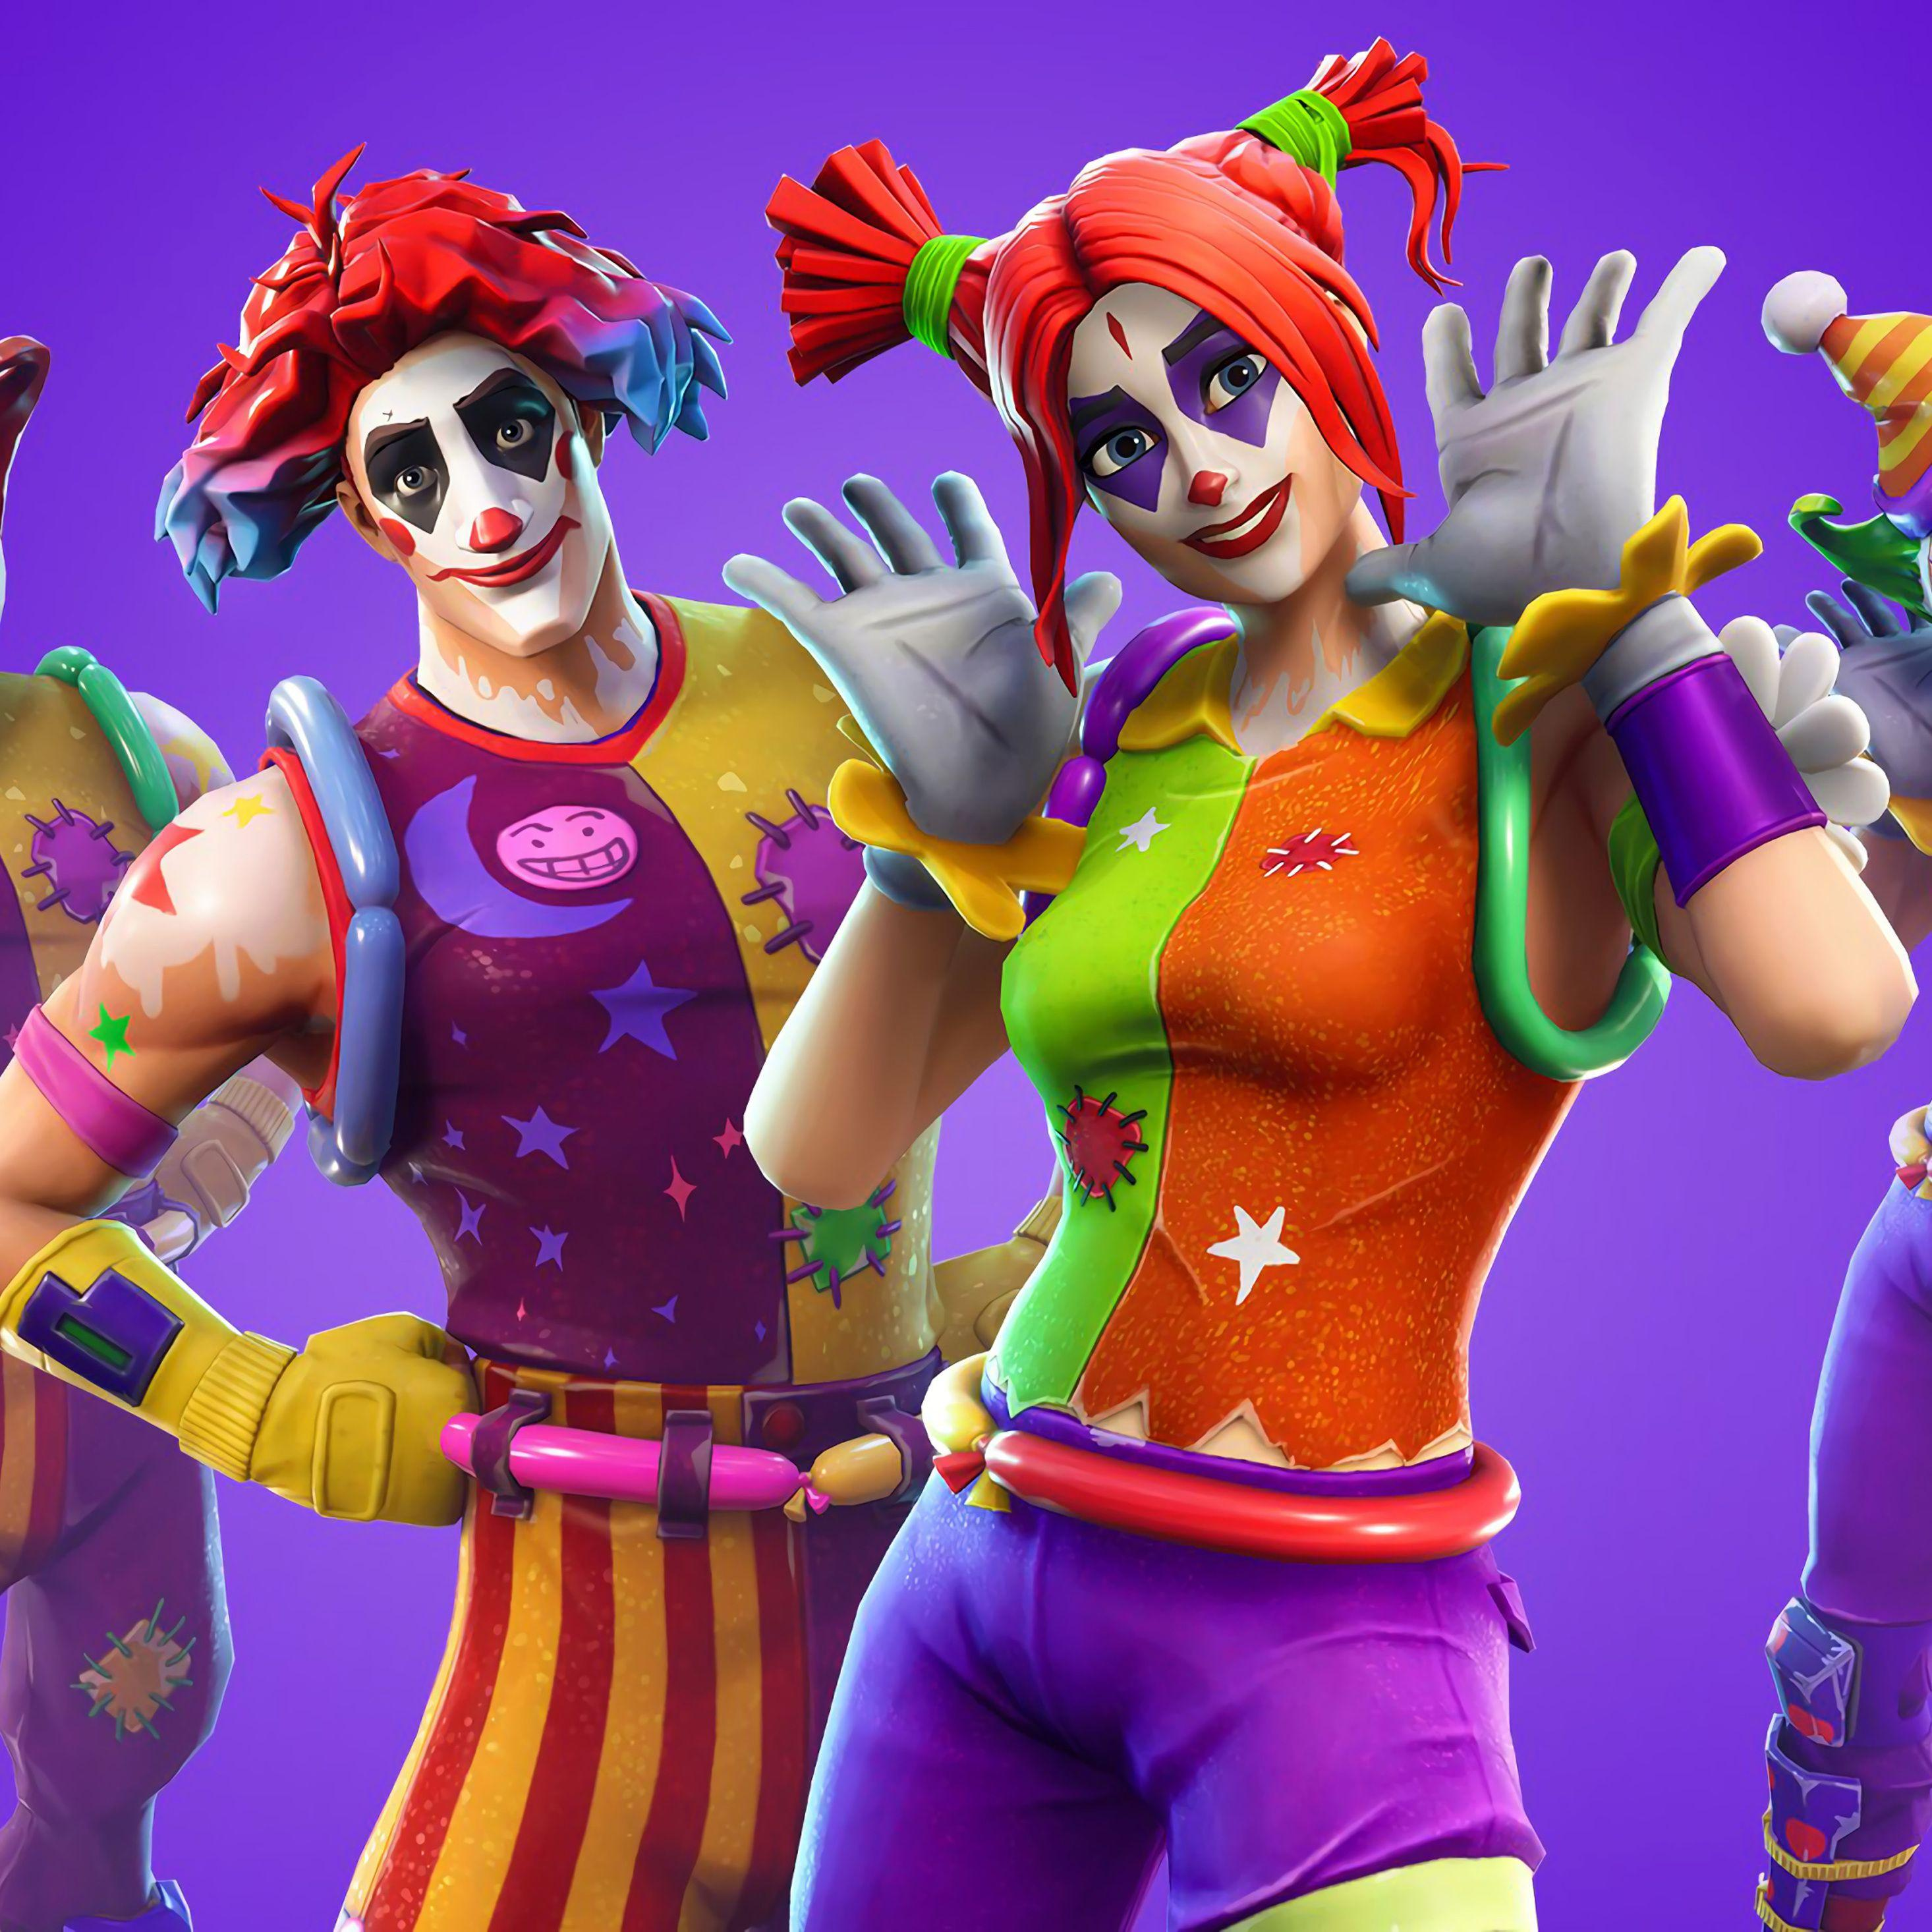 2932x2932 Peekaboo And Nite Fortnite Battle Royale Outfit 4k Ipad